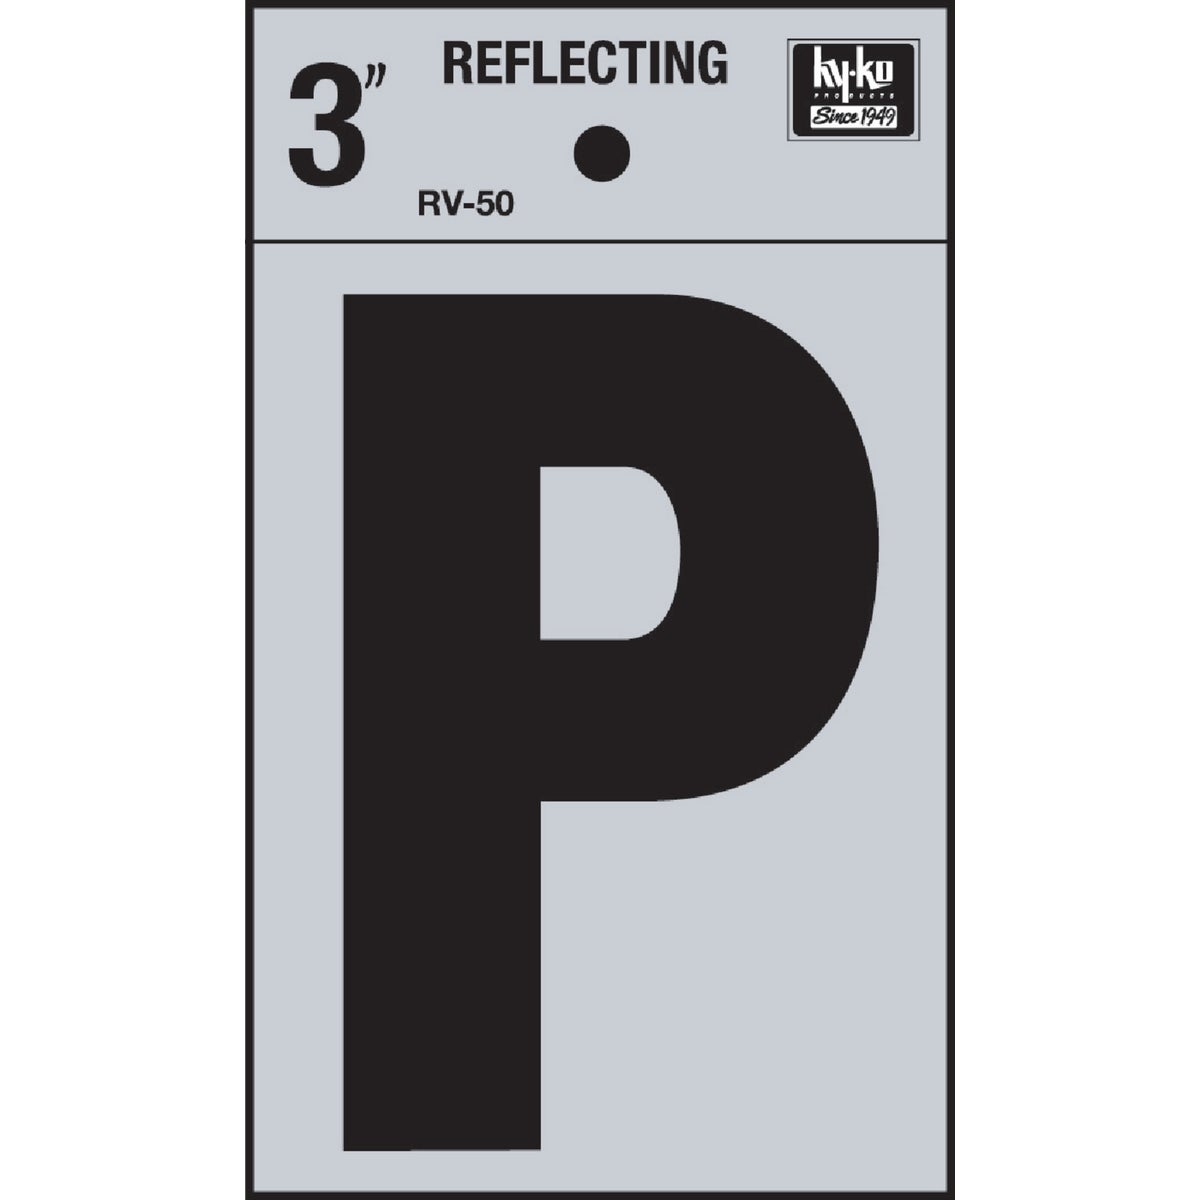 "3"" REFLECT LETTER P - RV-50P by Hy Ko Prods Co"